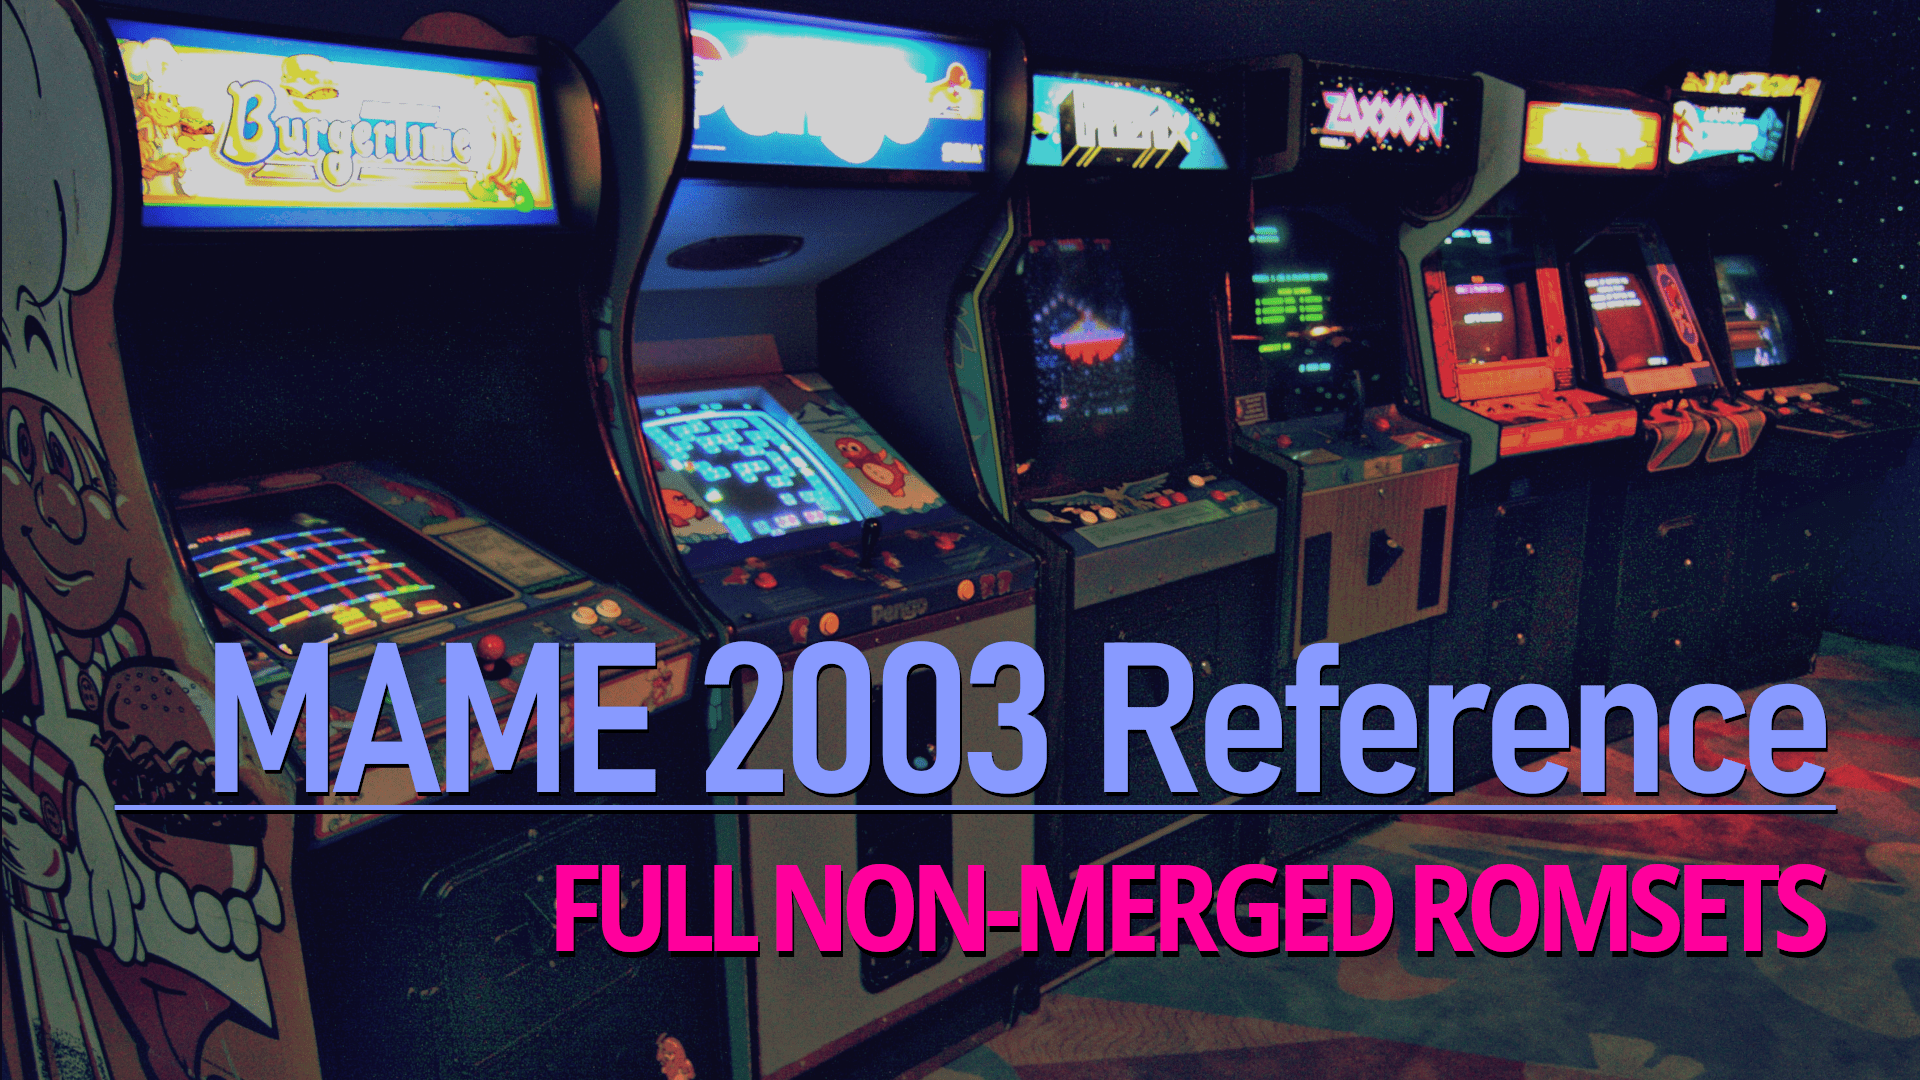 MAME 2003 Reference: MAME 0 78 ROMs, CHDs, and Samples